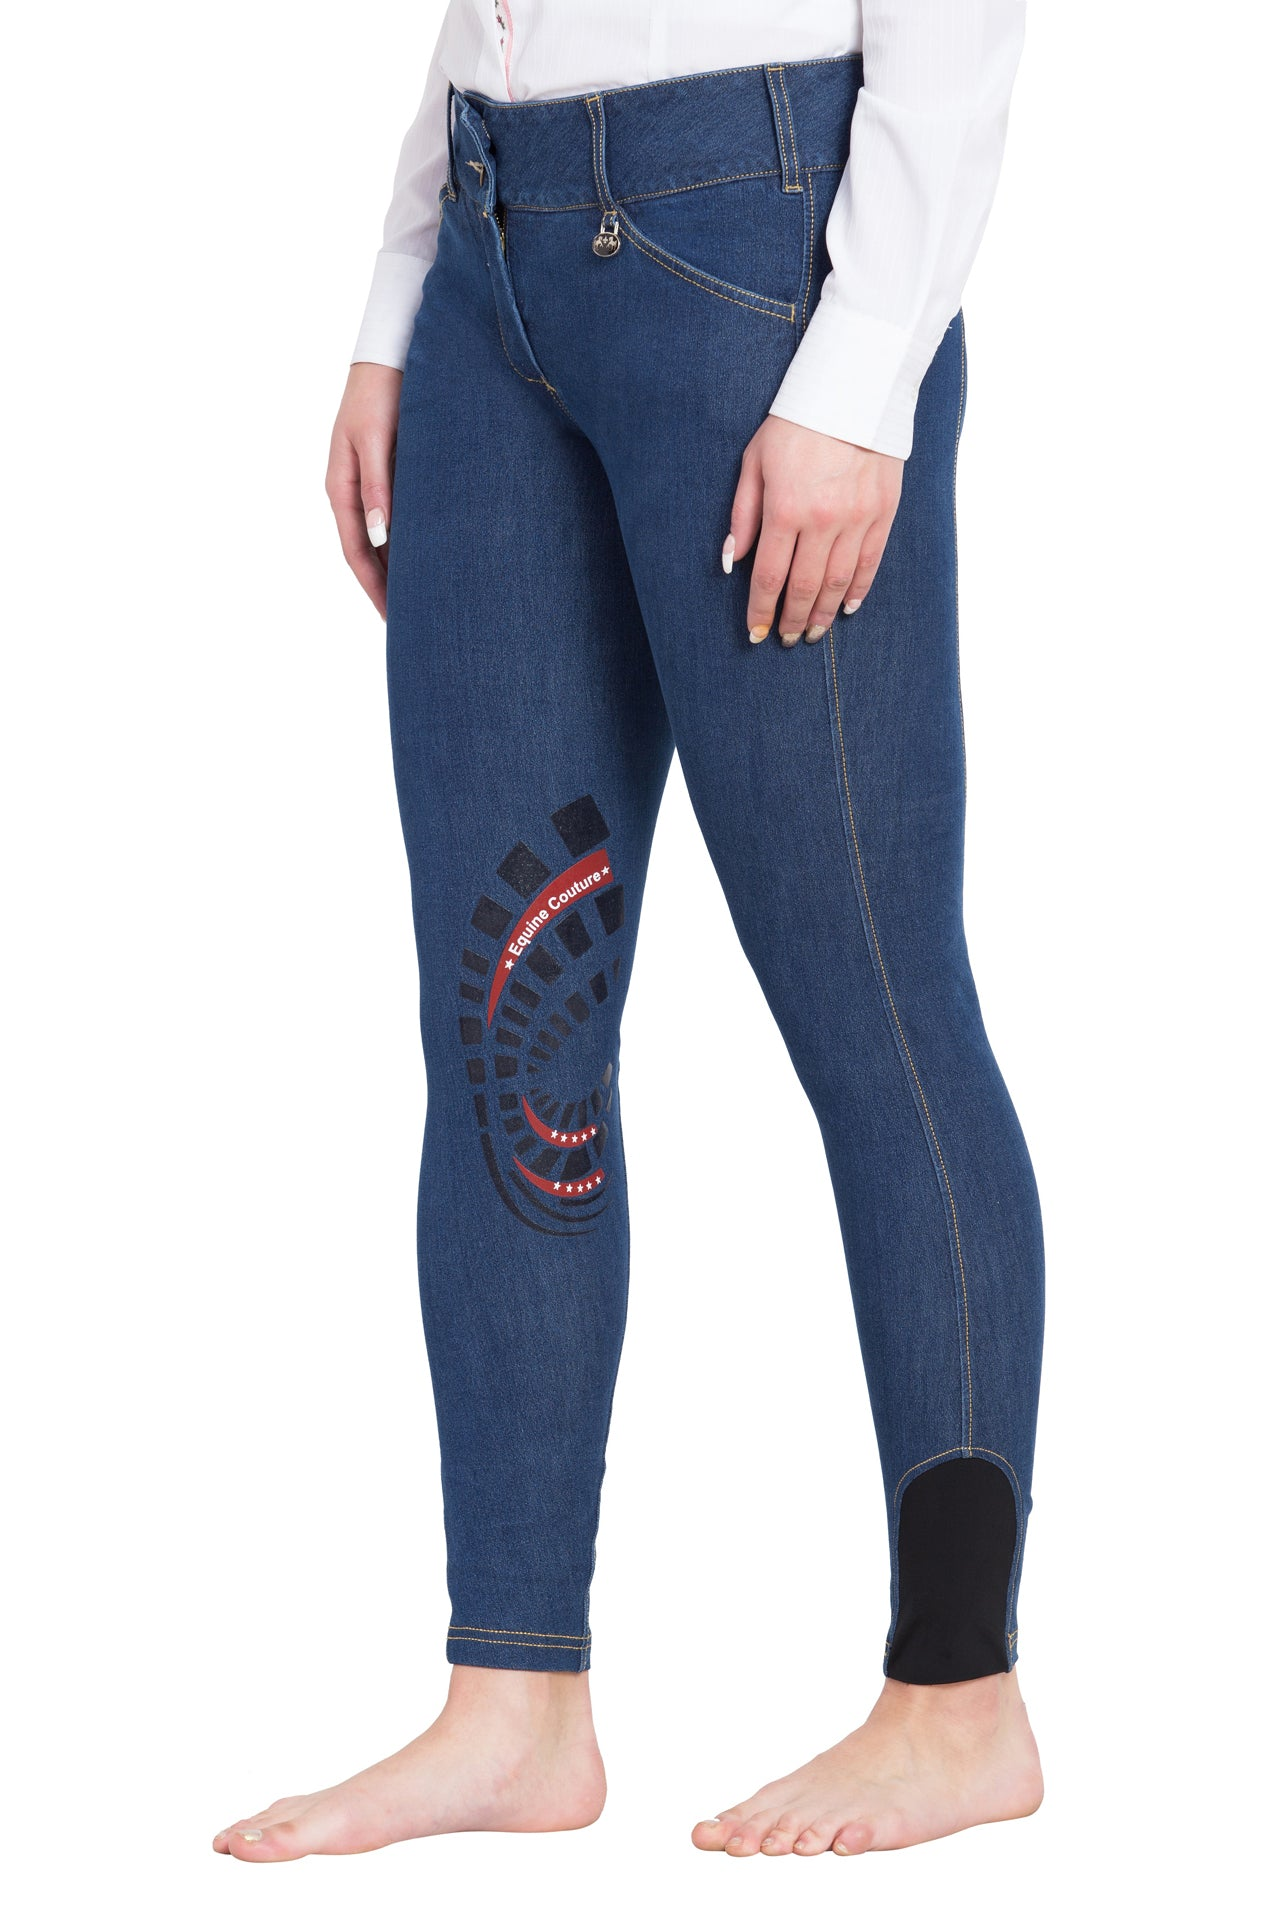 Equine Couture Ladies Calabasas Printed Silicone Patch Denim Jeans - Equine Couture - Breeches.com